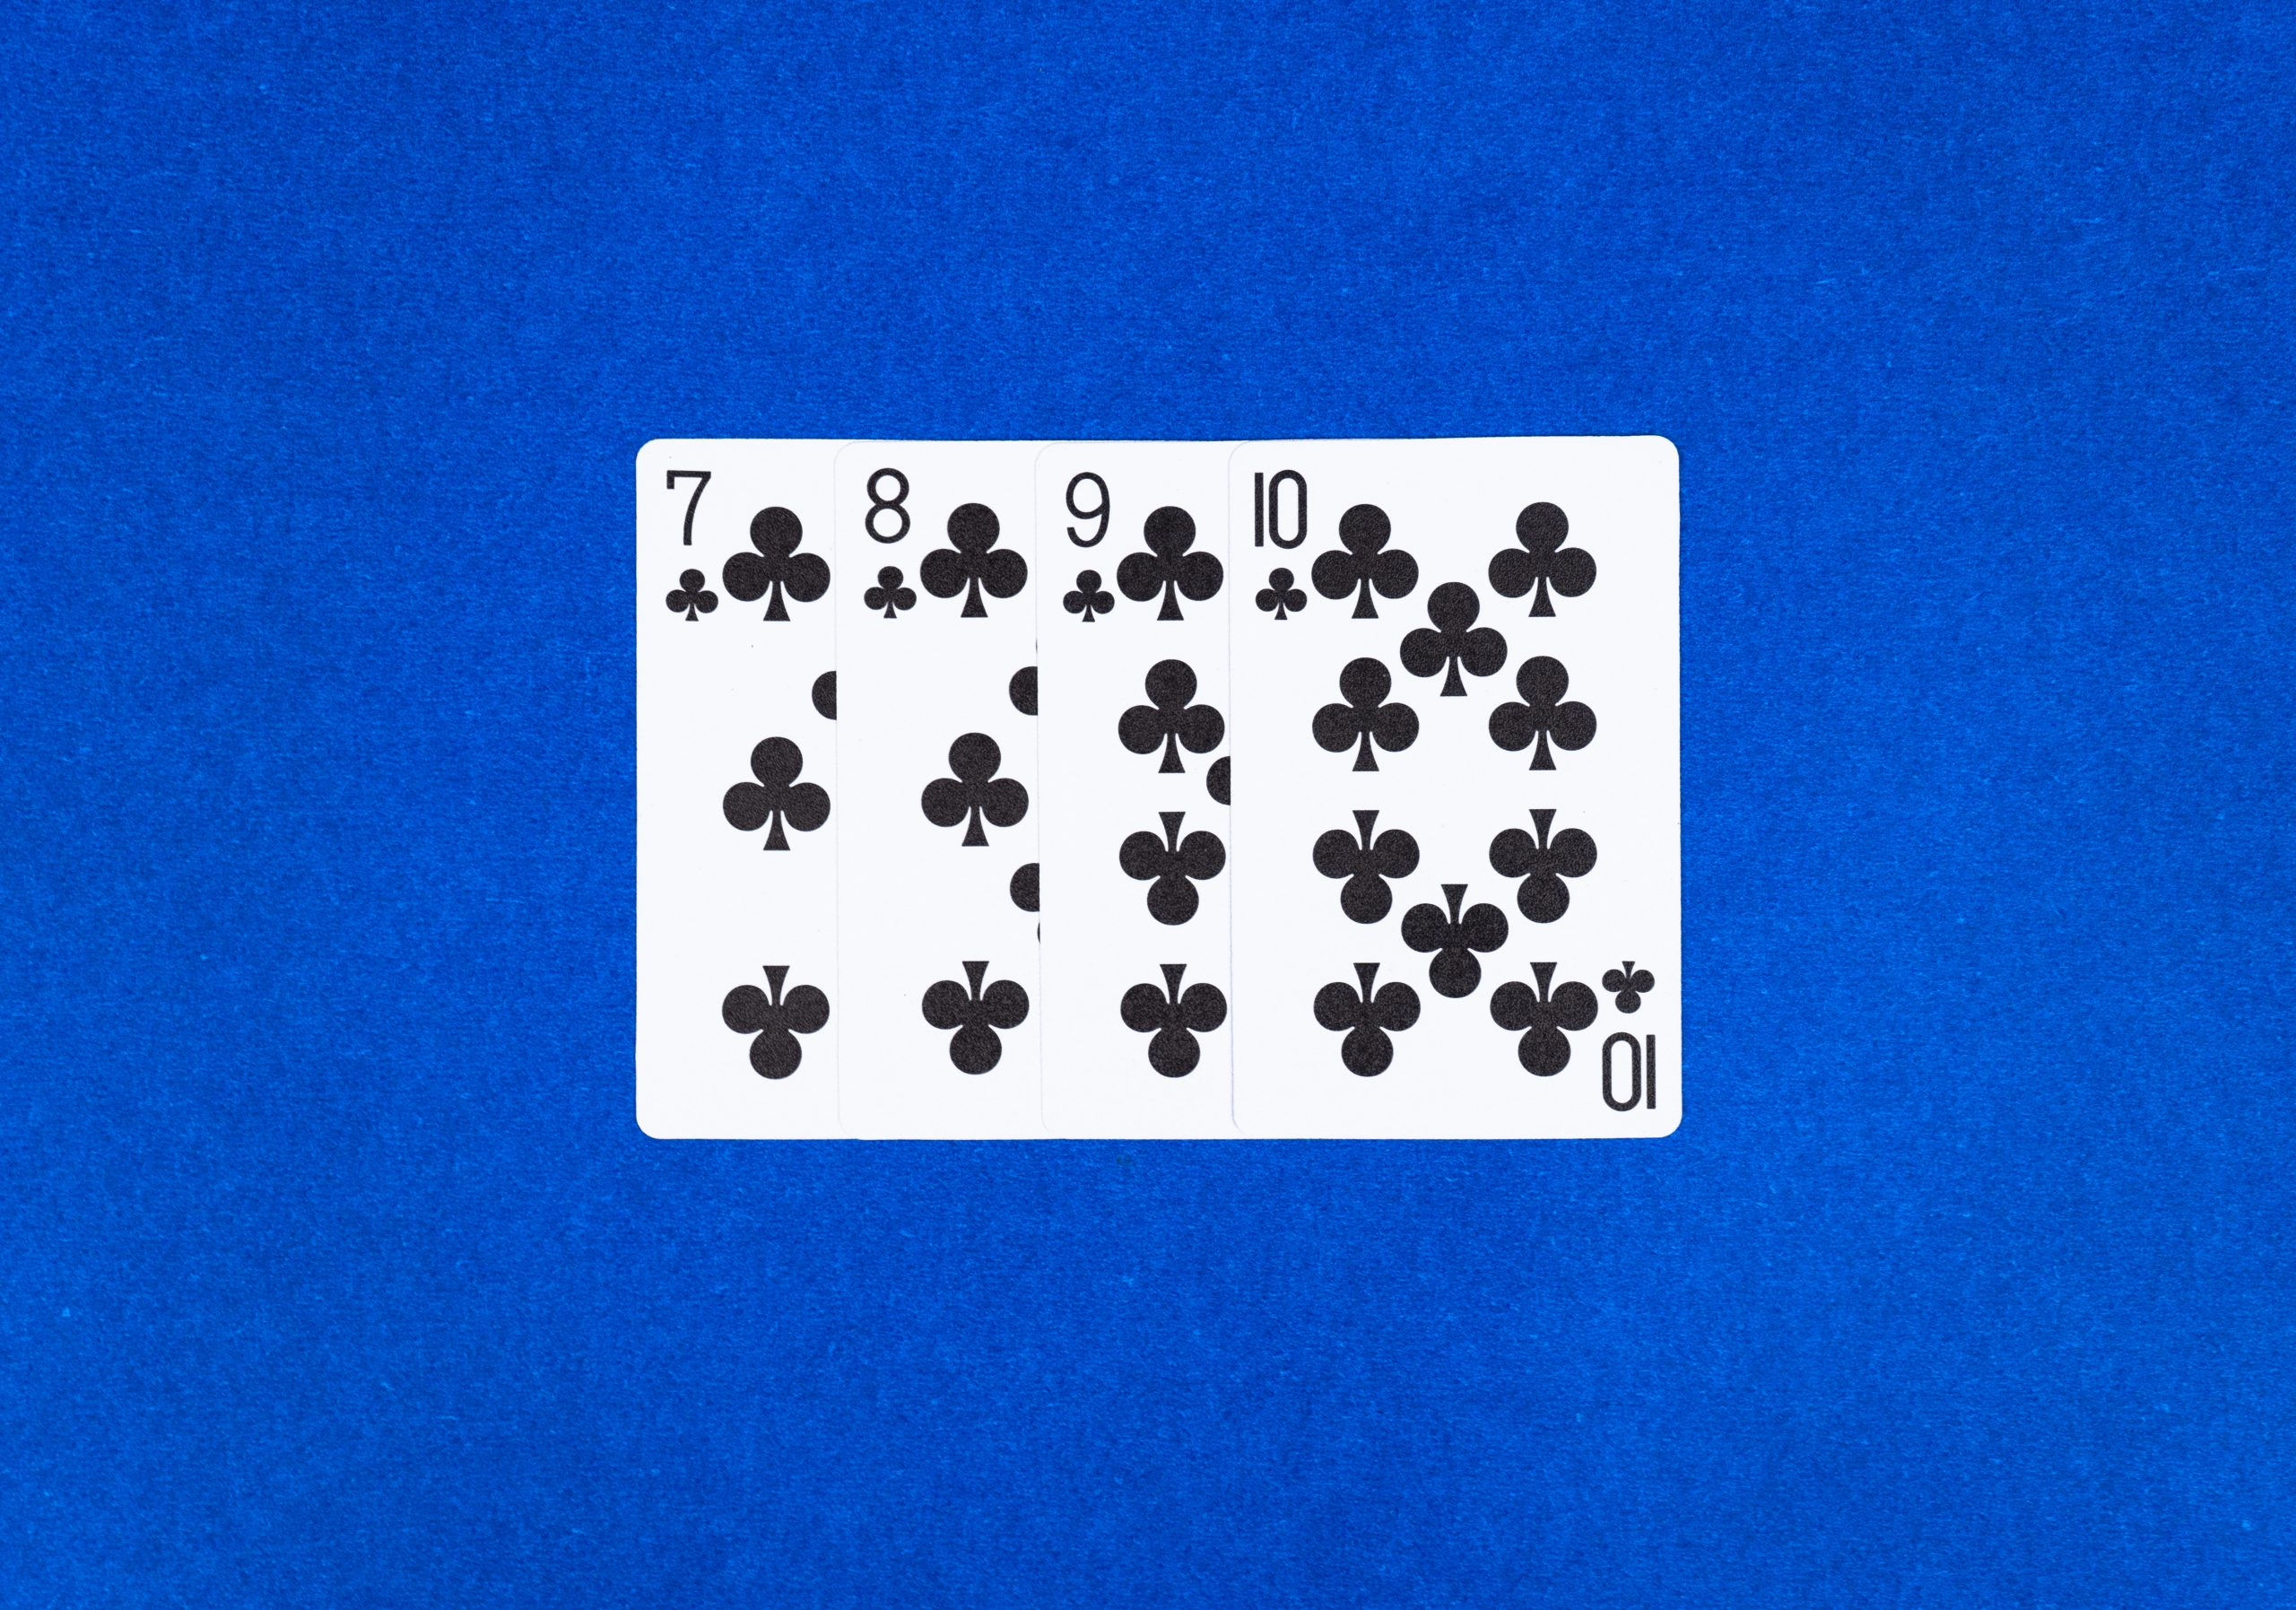 Rummy Sequence